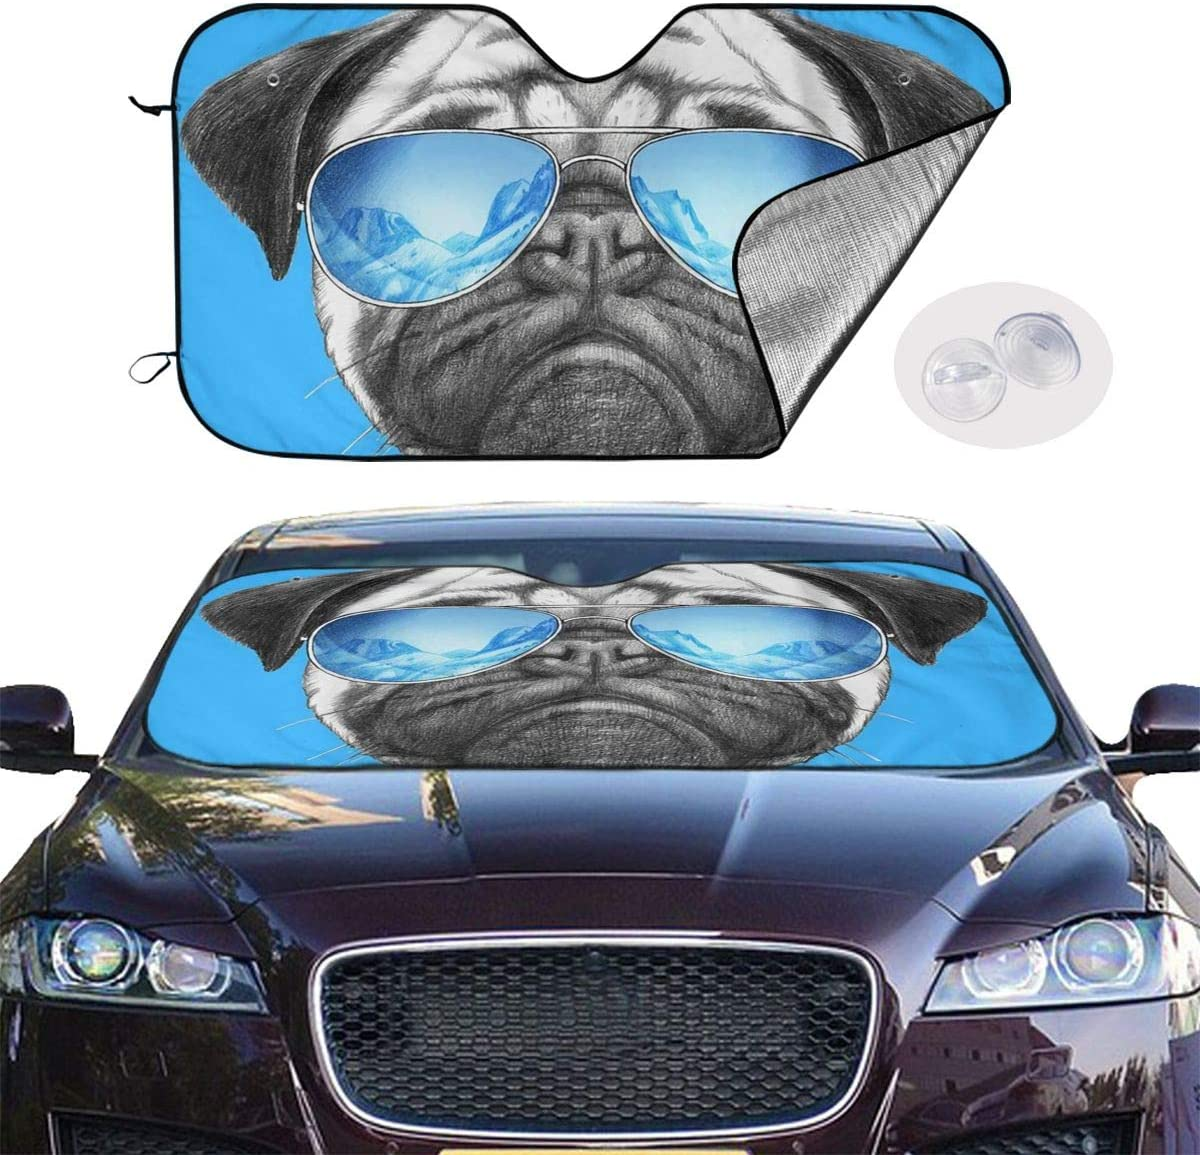 Fits Windshields of Various Sizes Sunshade to Keep Your Vehicle Cool and Damage Free,Easy to Use Blocks UV Rays Sun Visor Protector Pug Wearing Dark Glasses Car Windshield Sun Shade